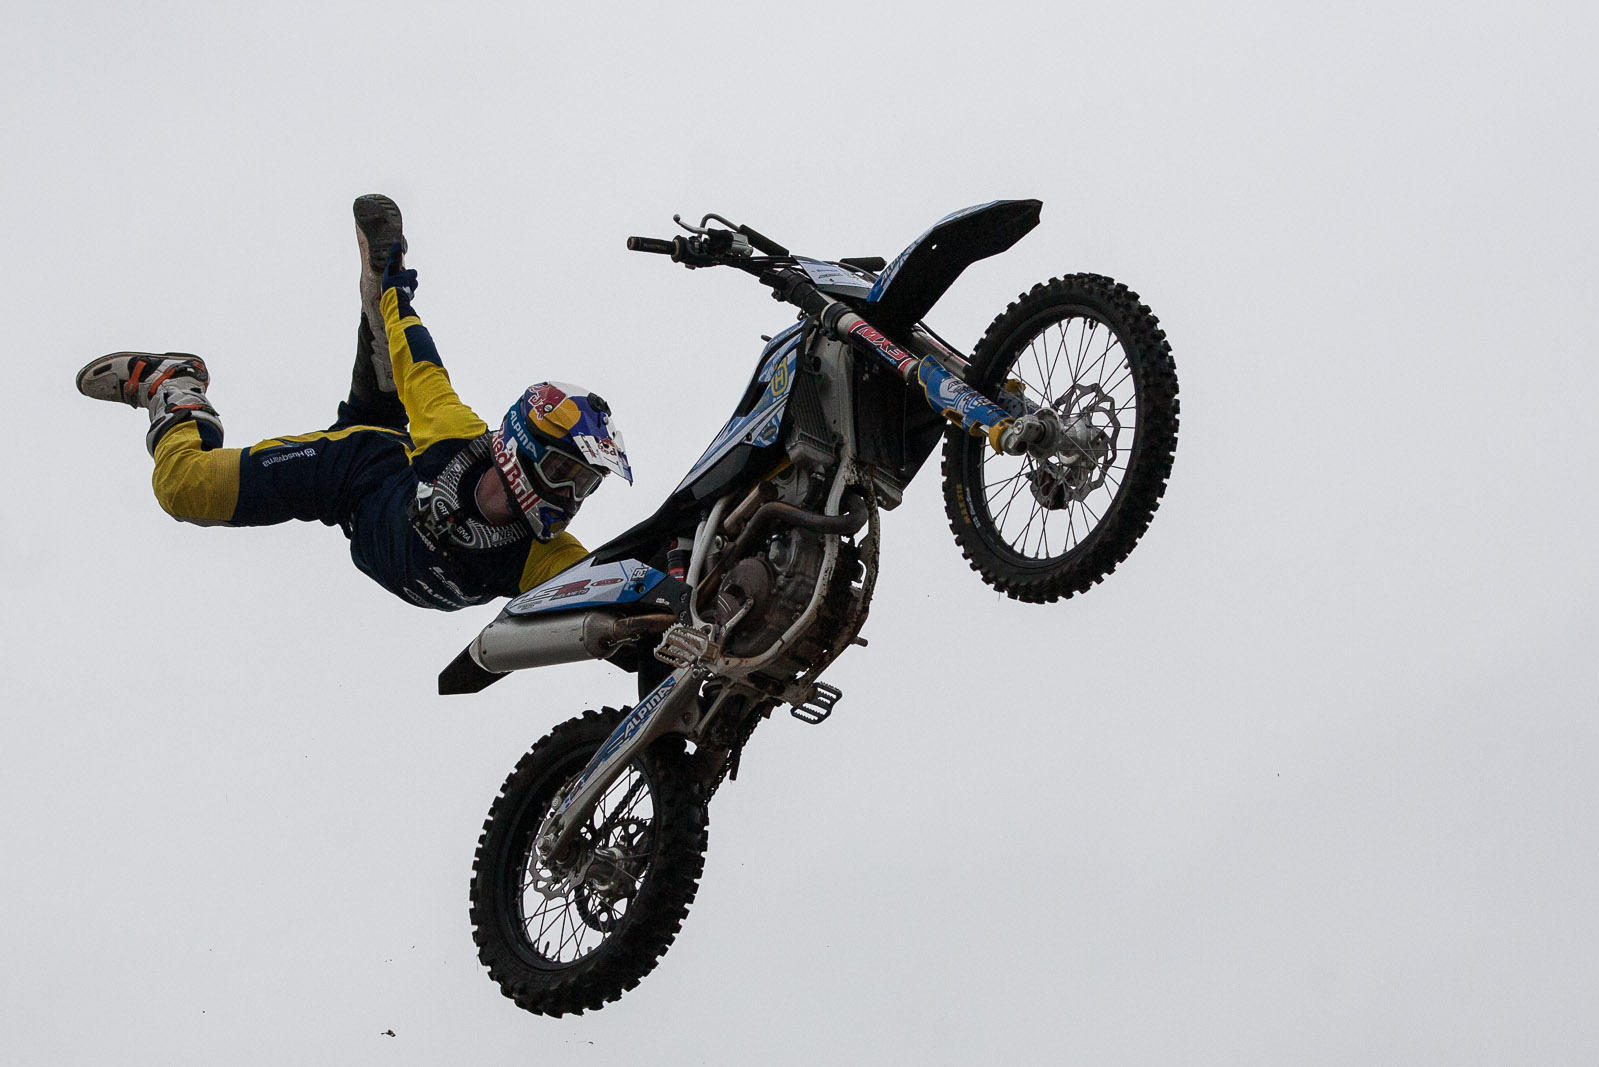 Motocross Freestyle Diverse NIGHT of the JUMPs